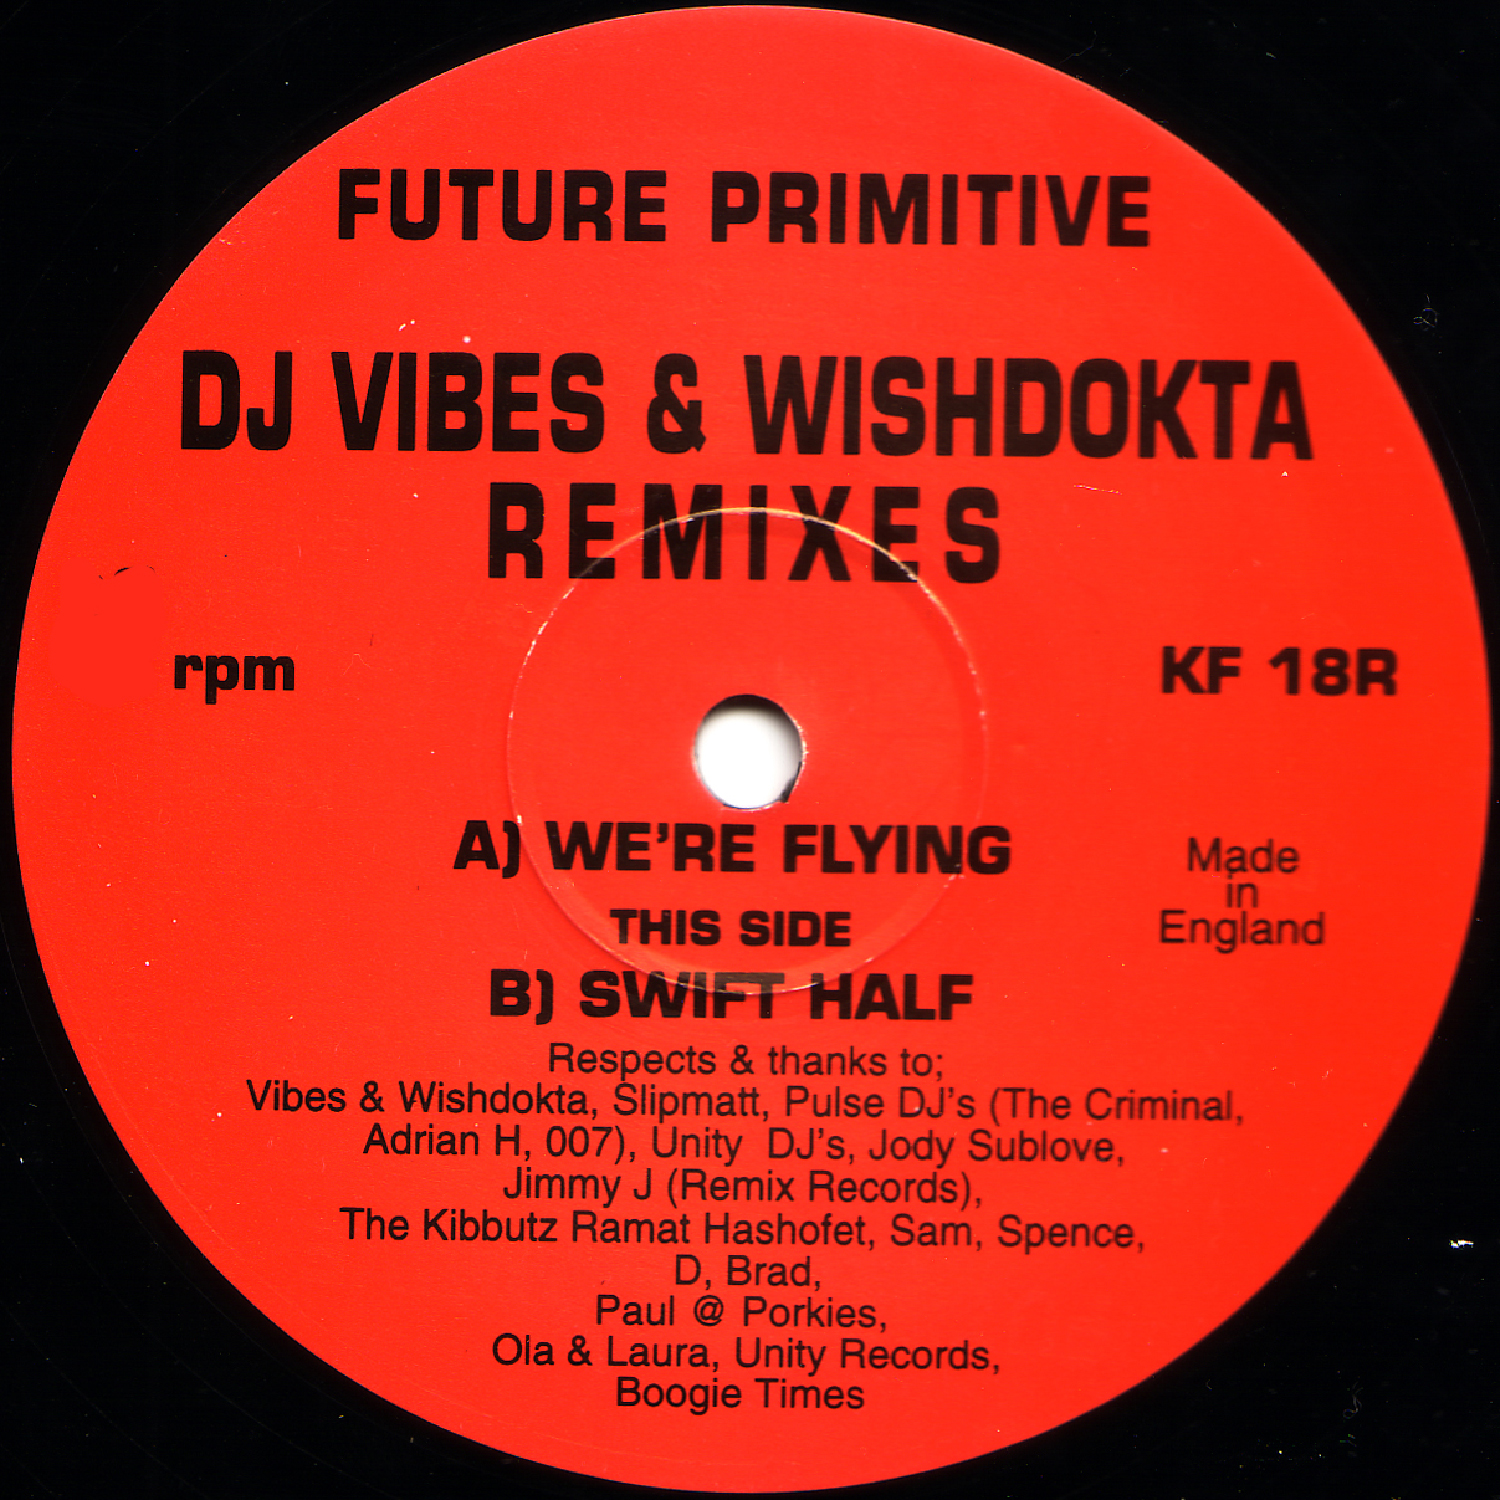 [KF018R] Future Primitive - Swift Half Remixes (Digital Only)